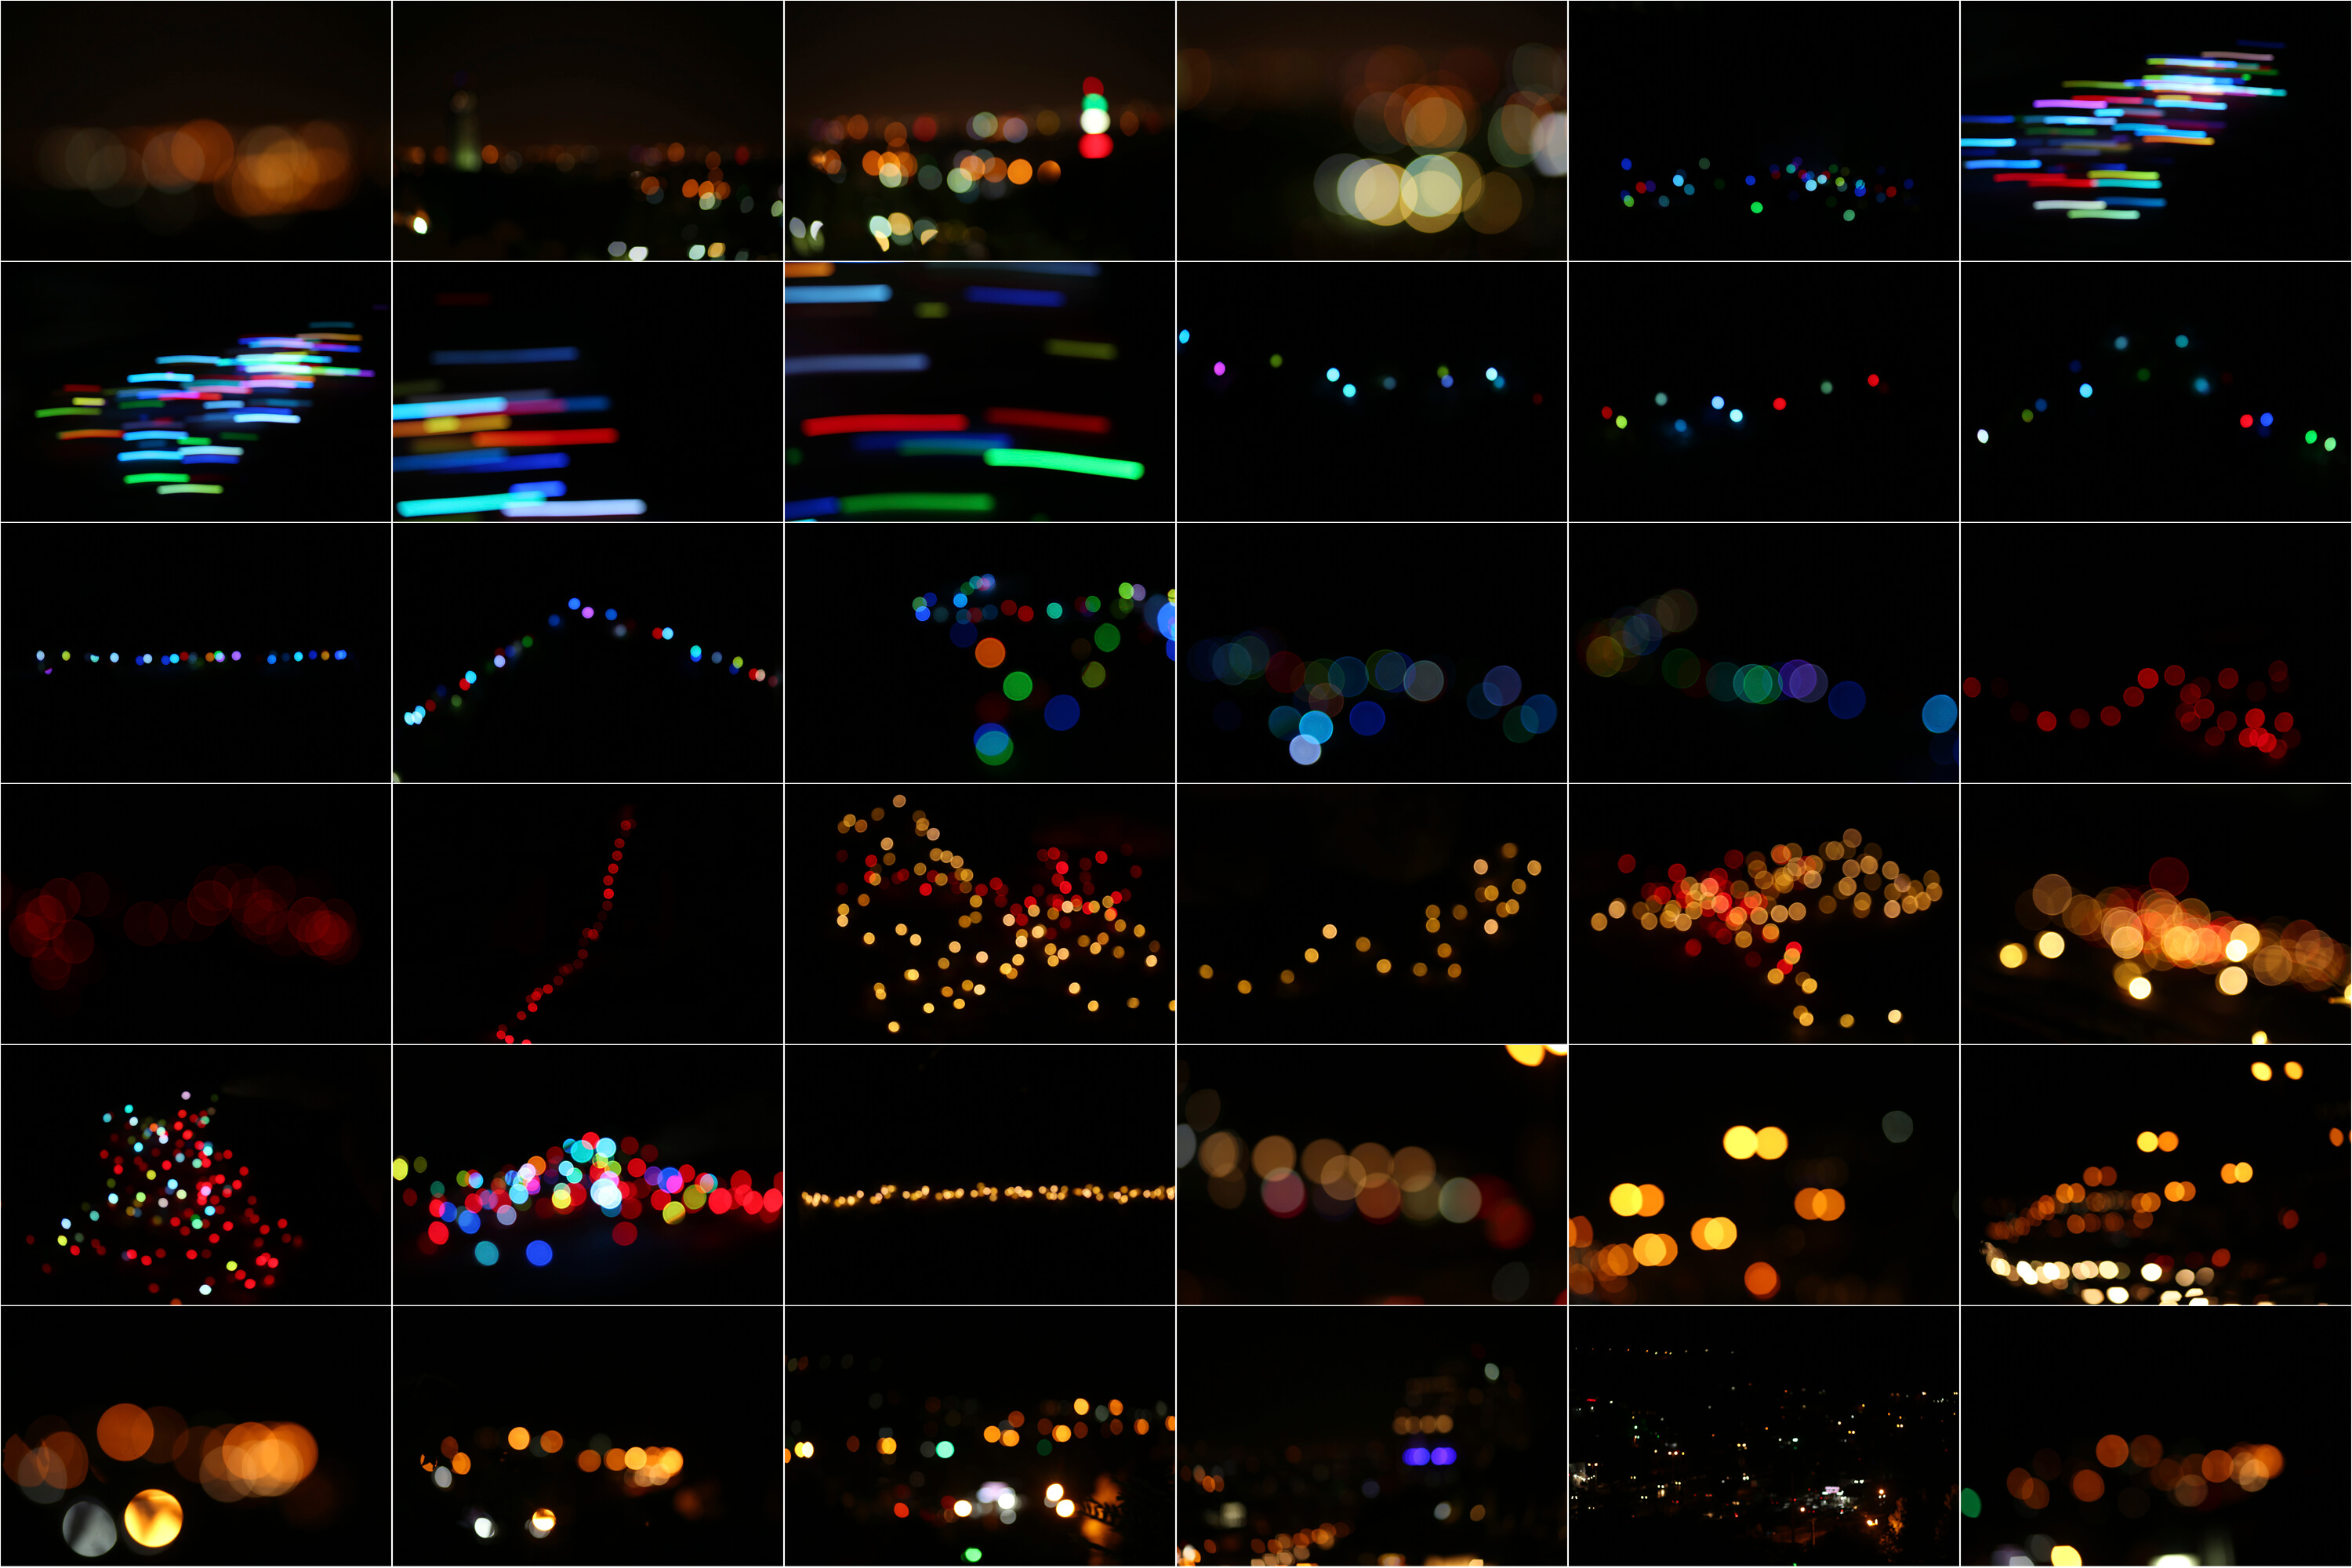 80 Life Style Bokeh Pack 02 lights Effect Photo Overlays example image 9